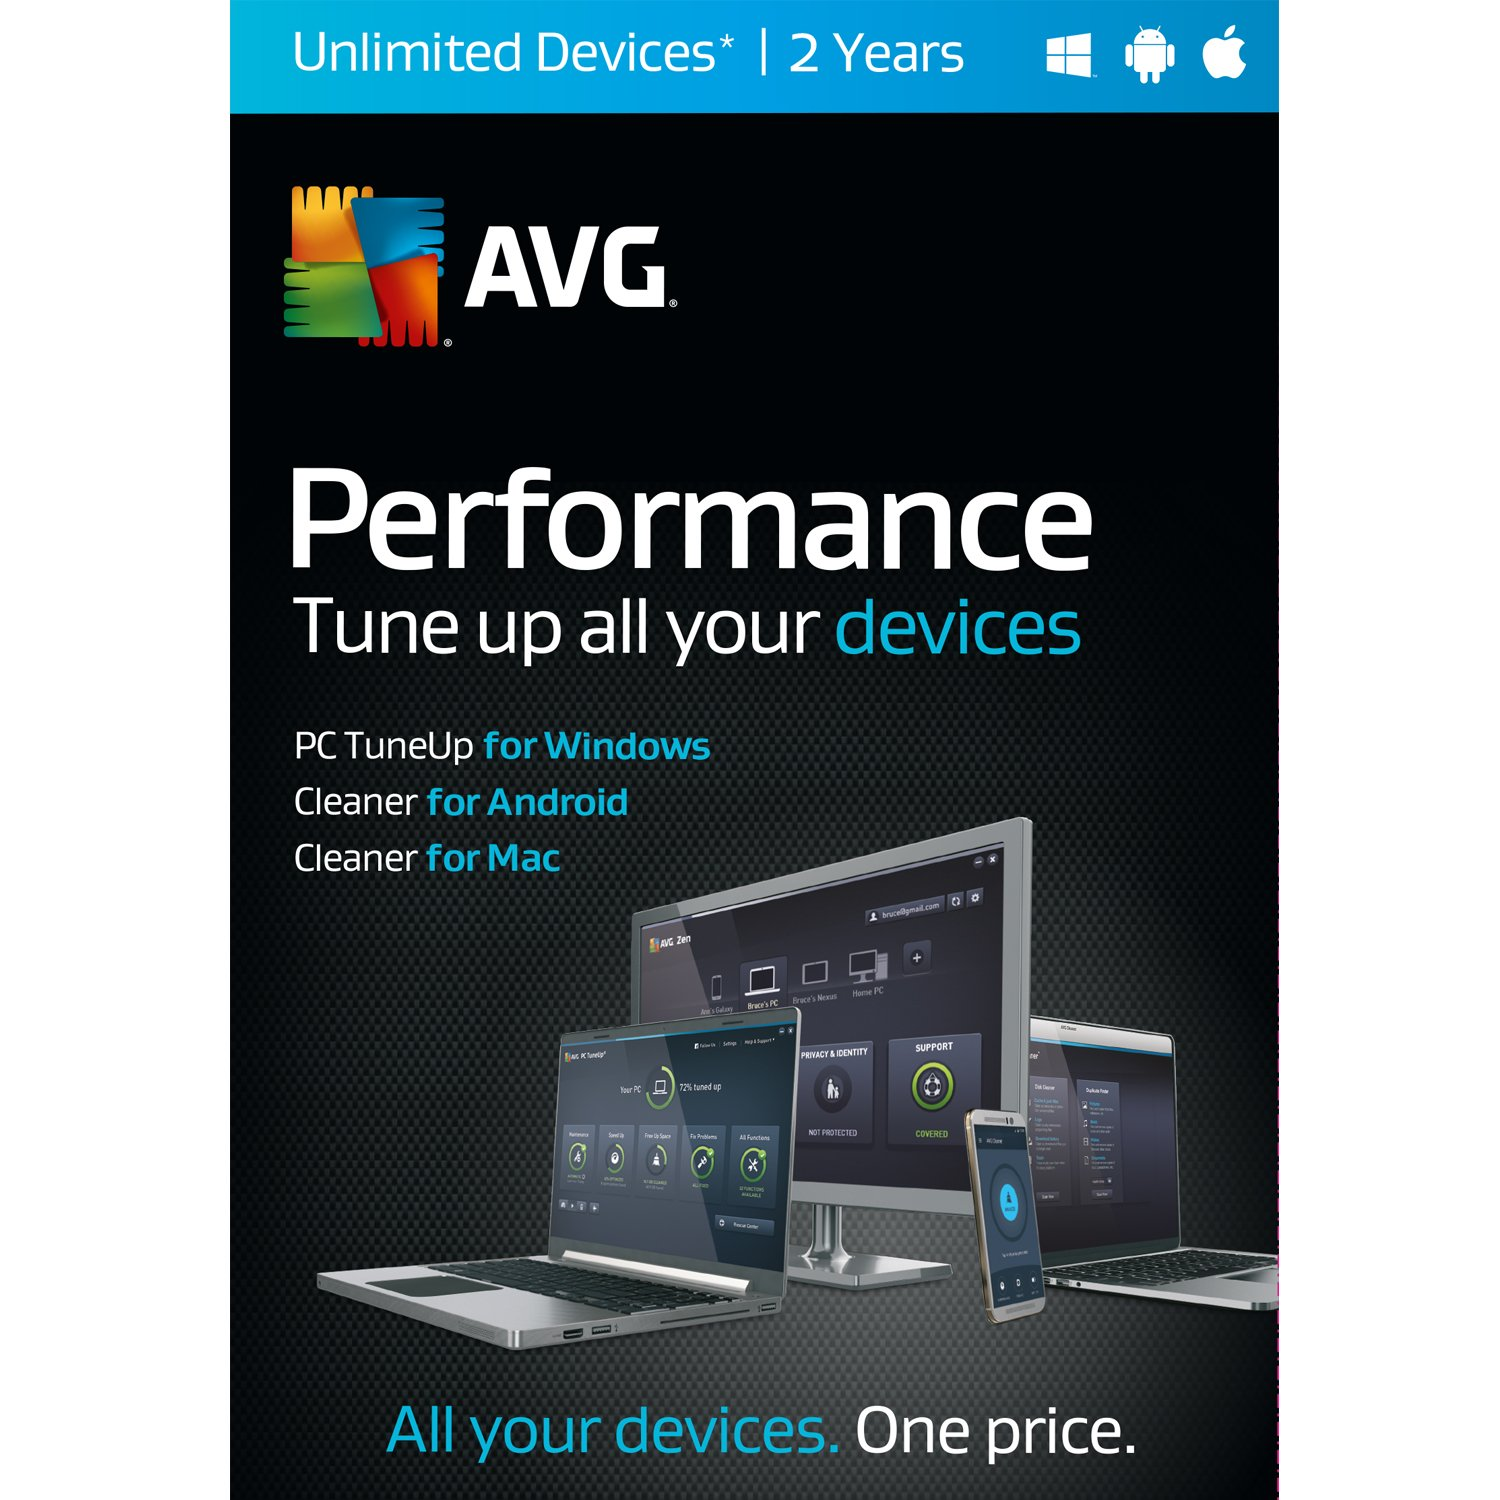 AVG Performance Software, 2 Year